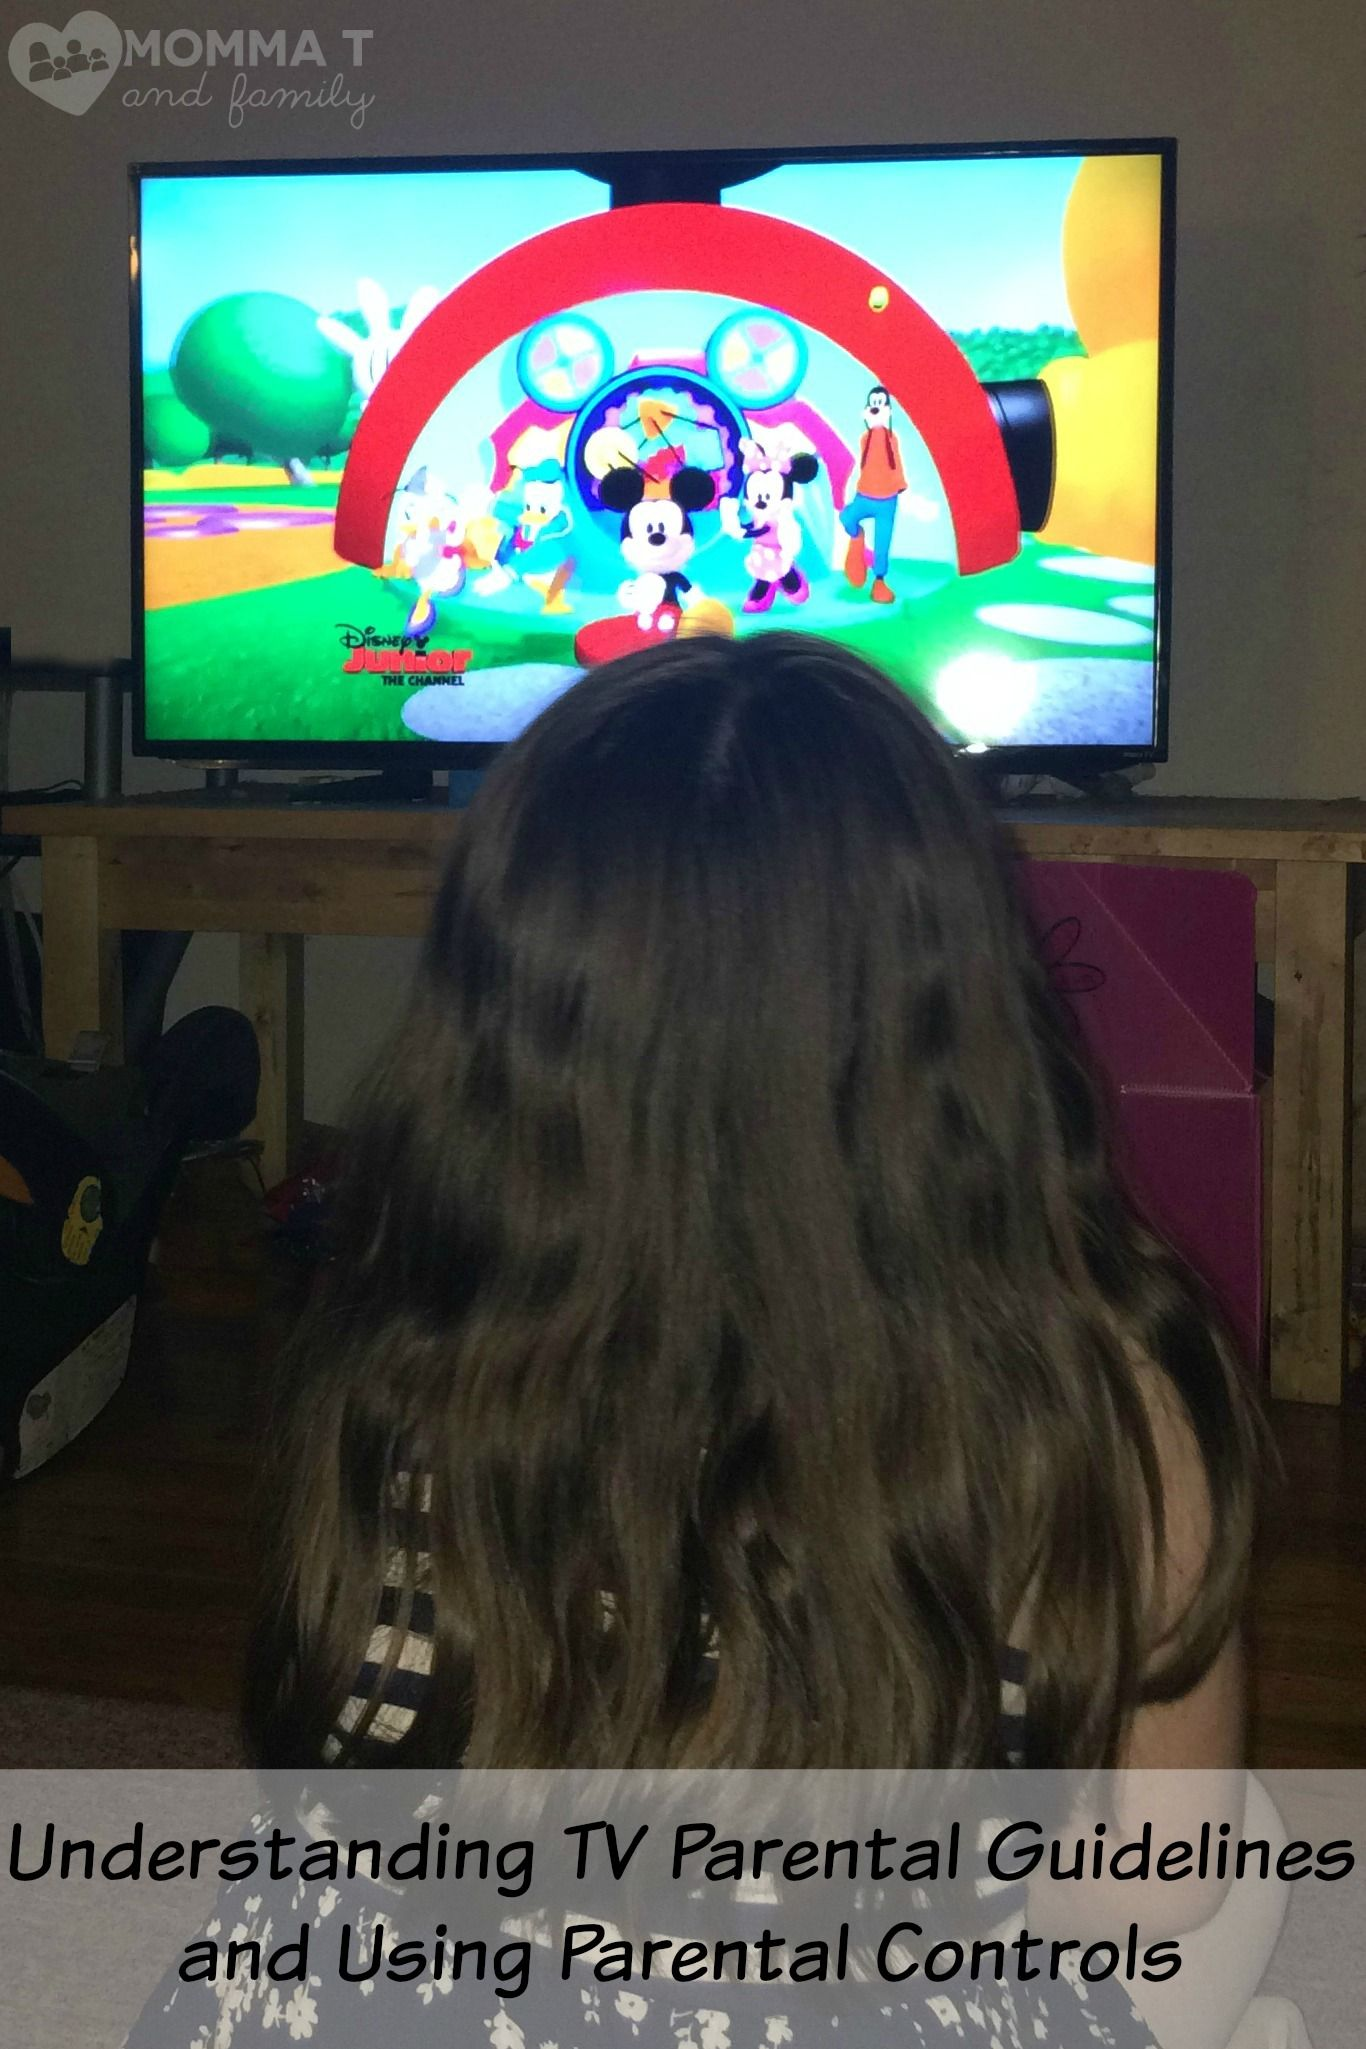 TV Parental Guidelines and Using Parental Controls